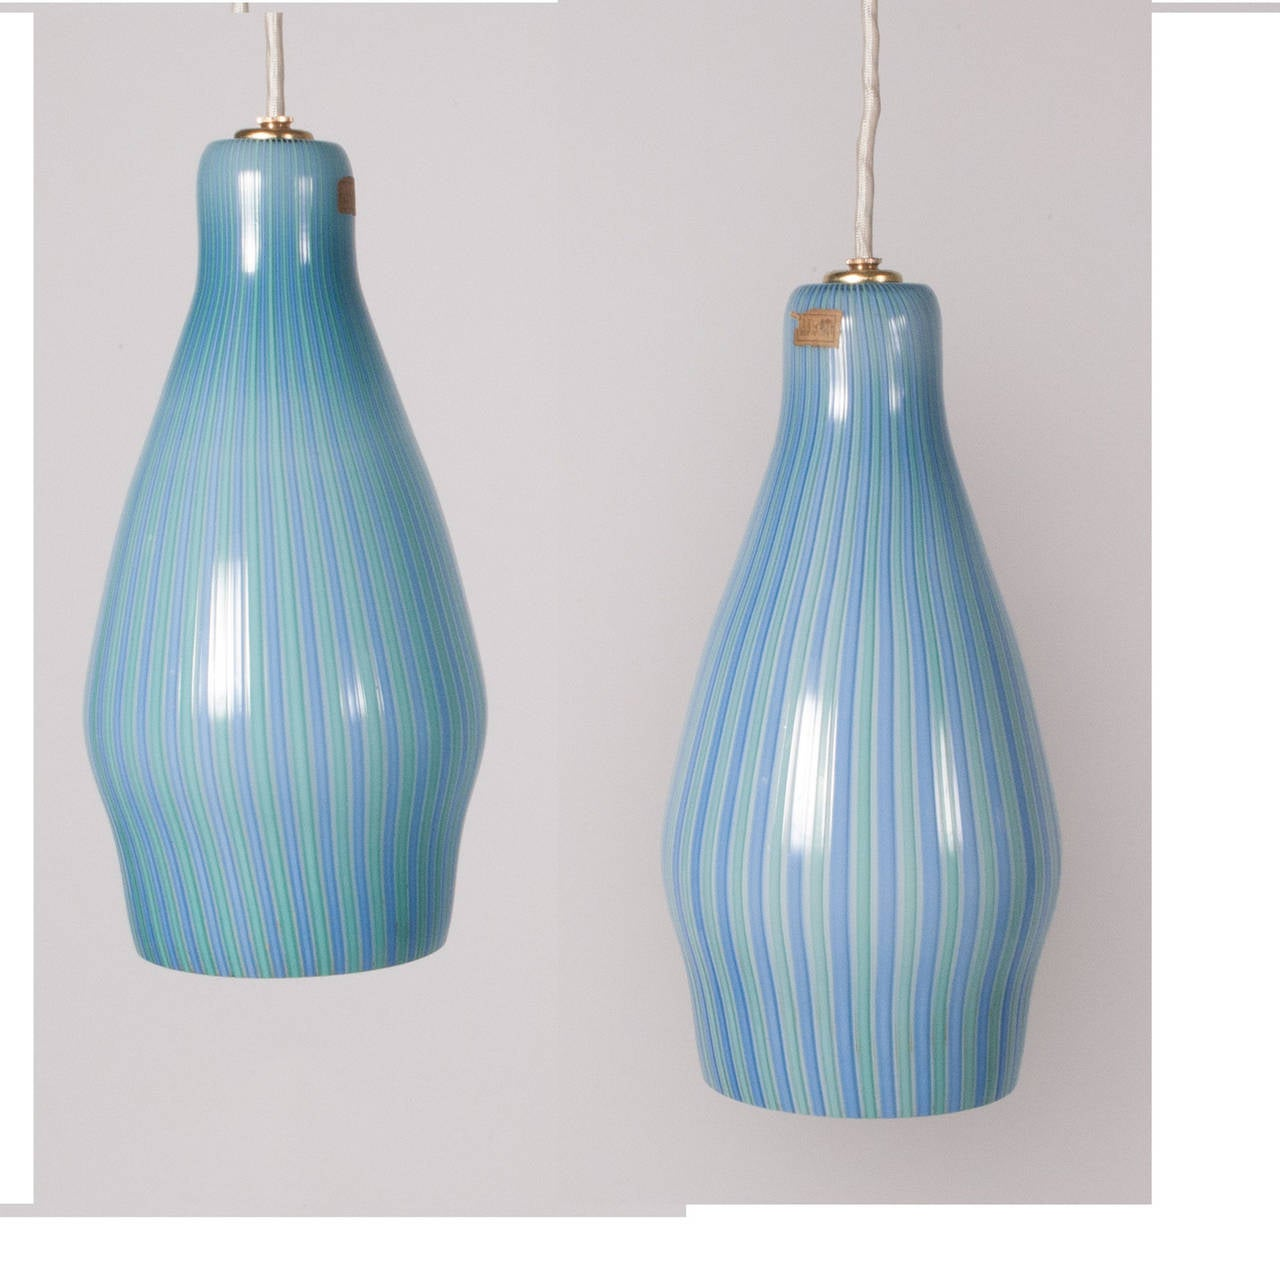 Lamps in blown glass streaked with milk-white and blue and light green rods, original paper stickers.